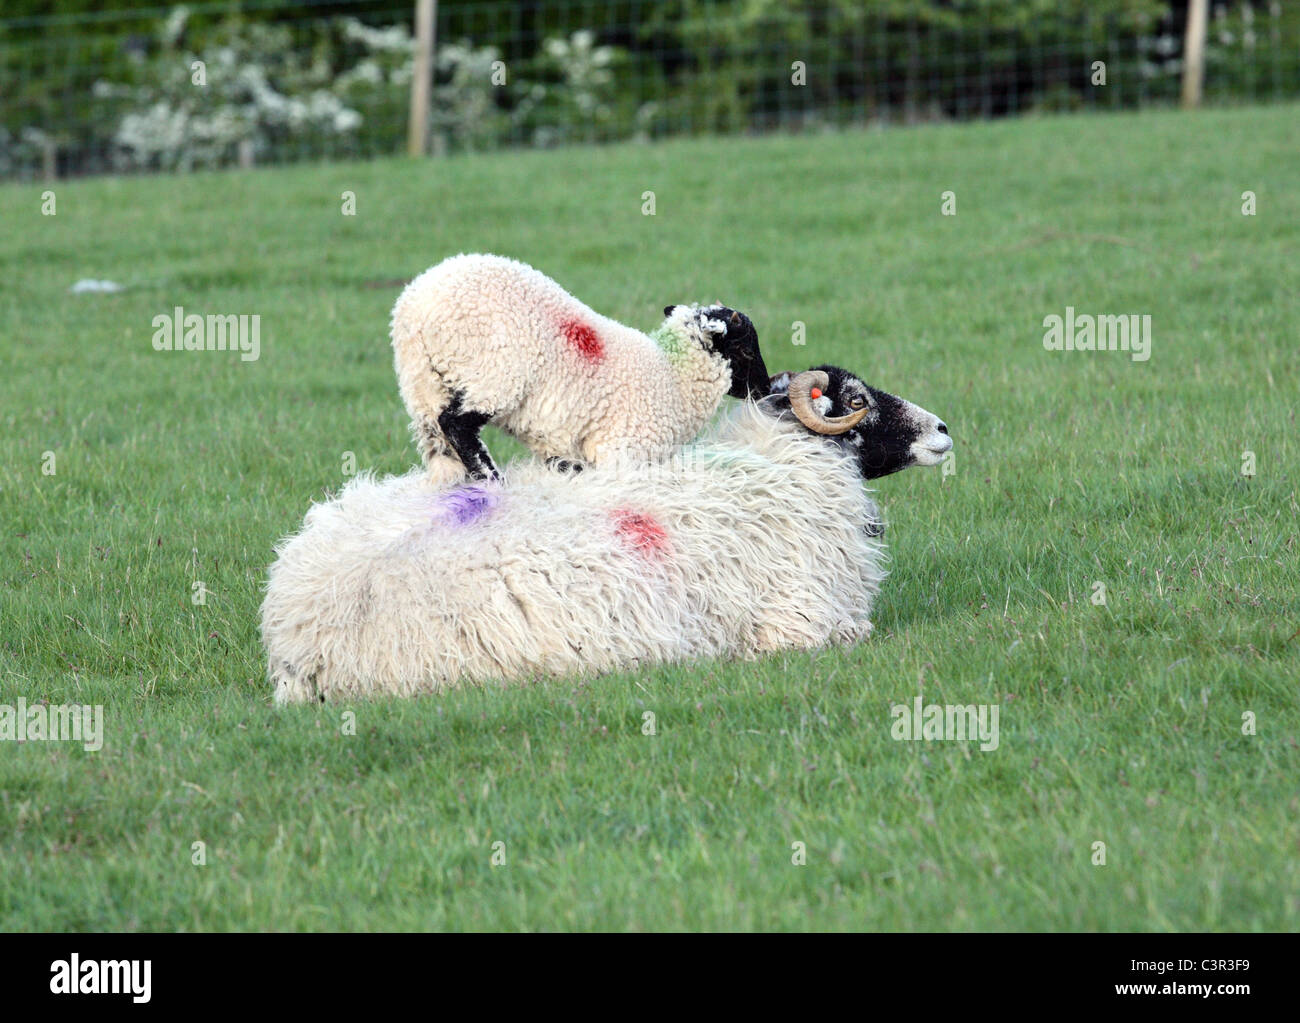 A lamb stands on the back of its mother at Castlerigg Stone Circle in the English Lake District. - Stock Image